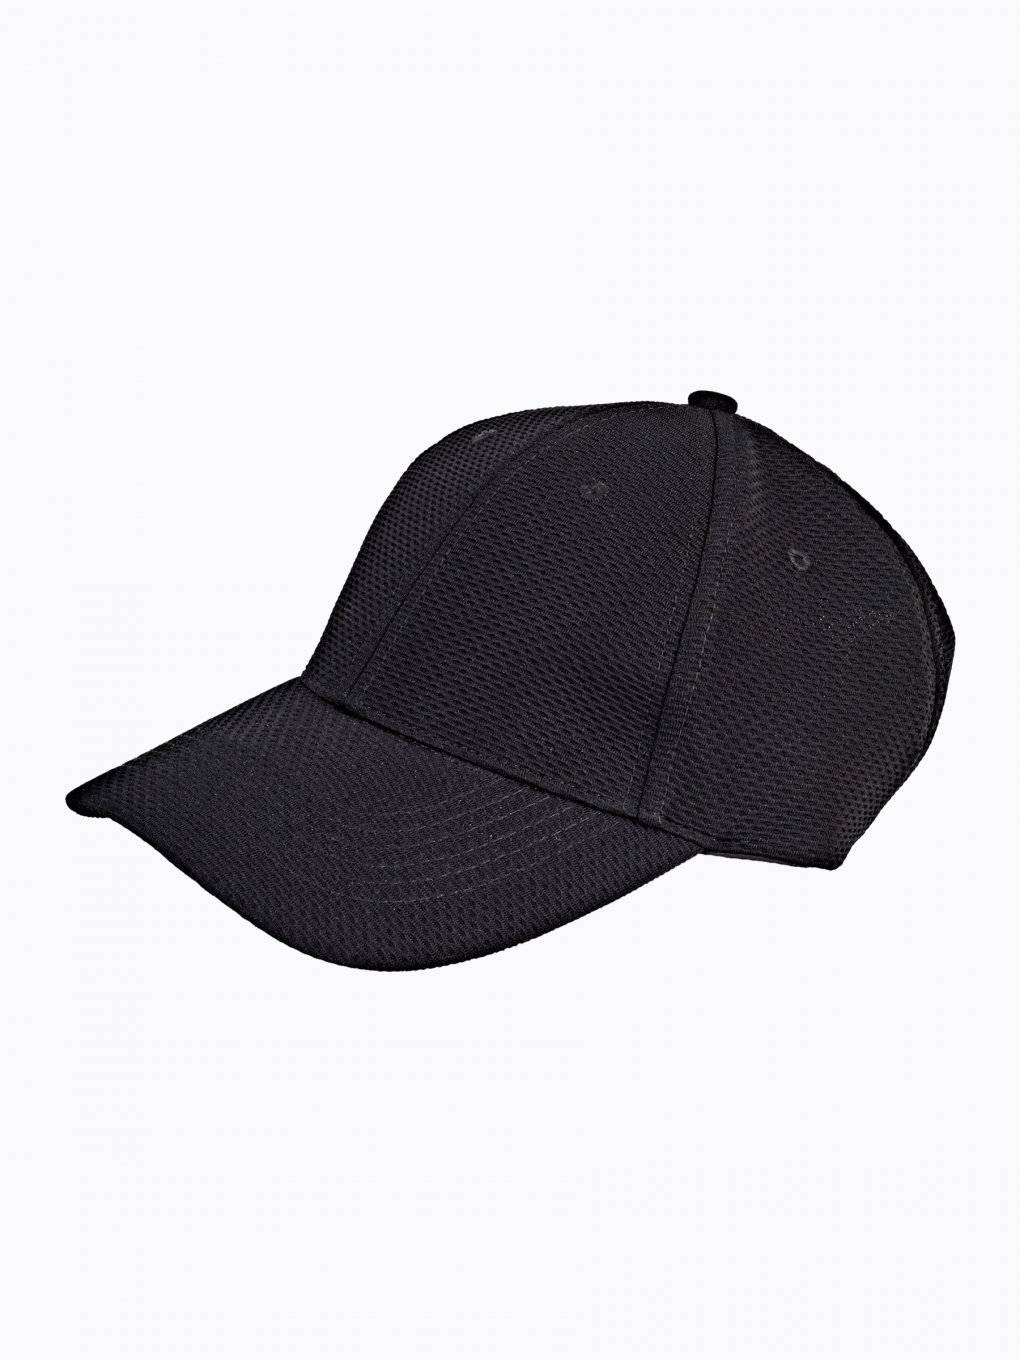 STRUCTURED SNAPBACK